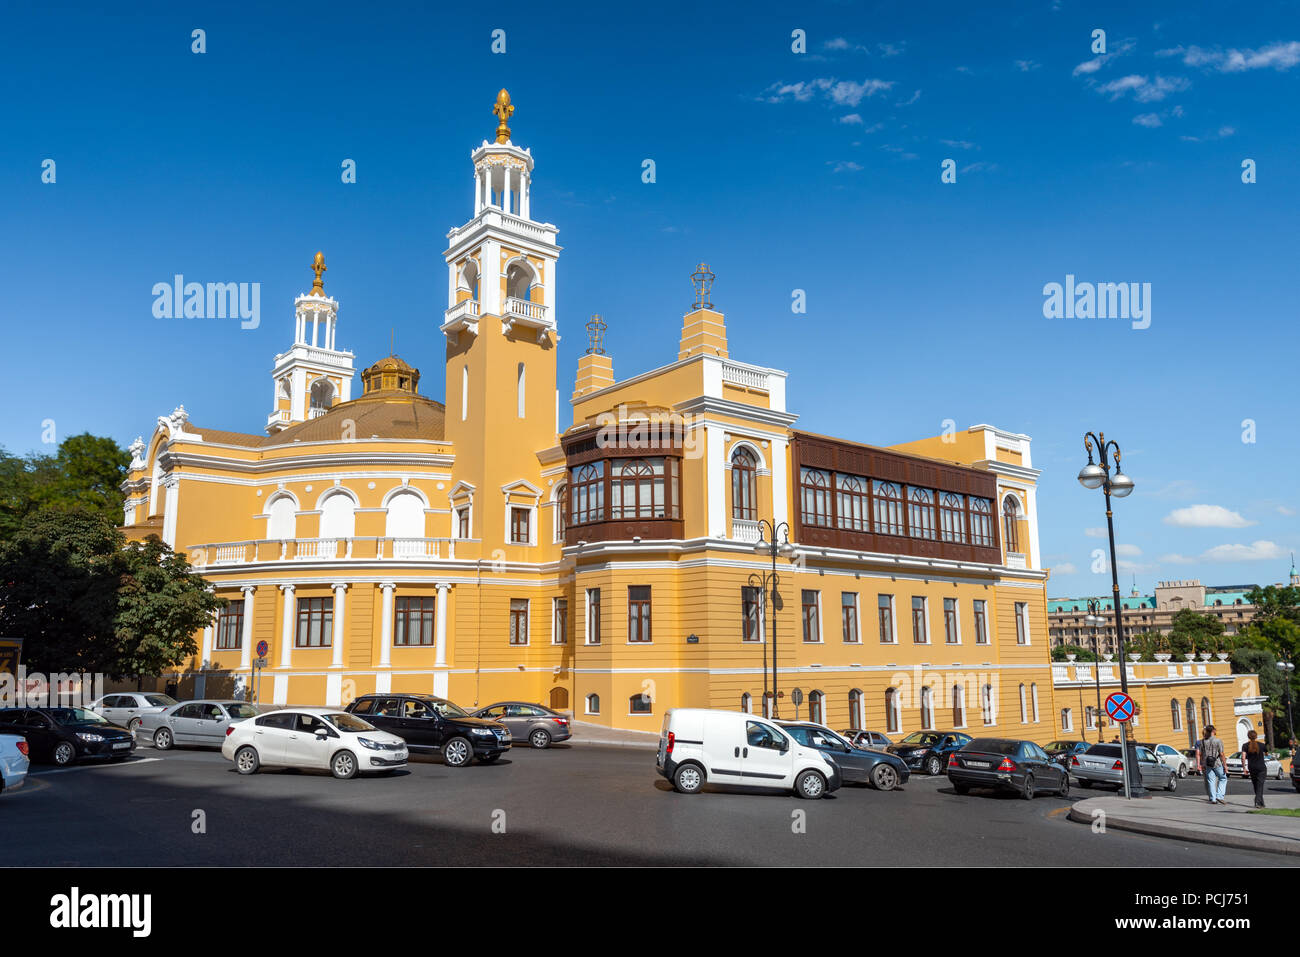 Baku, Azerbaijan, May 03, 2018. Old architectural building of the State Philharmonic - Stock Image